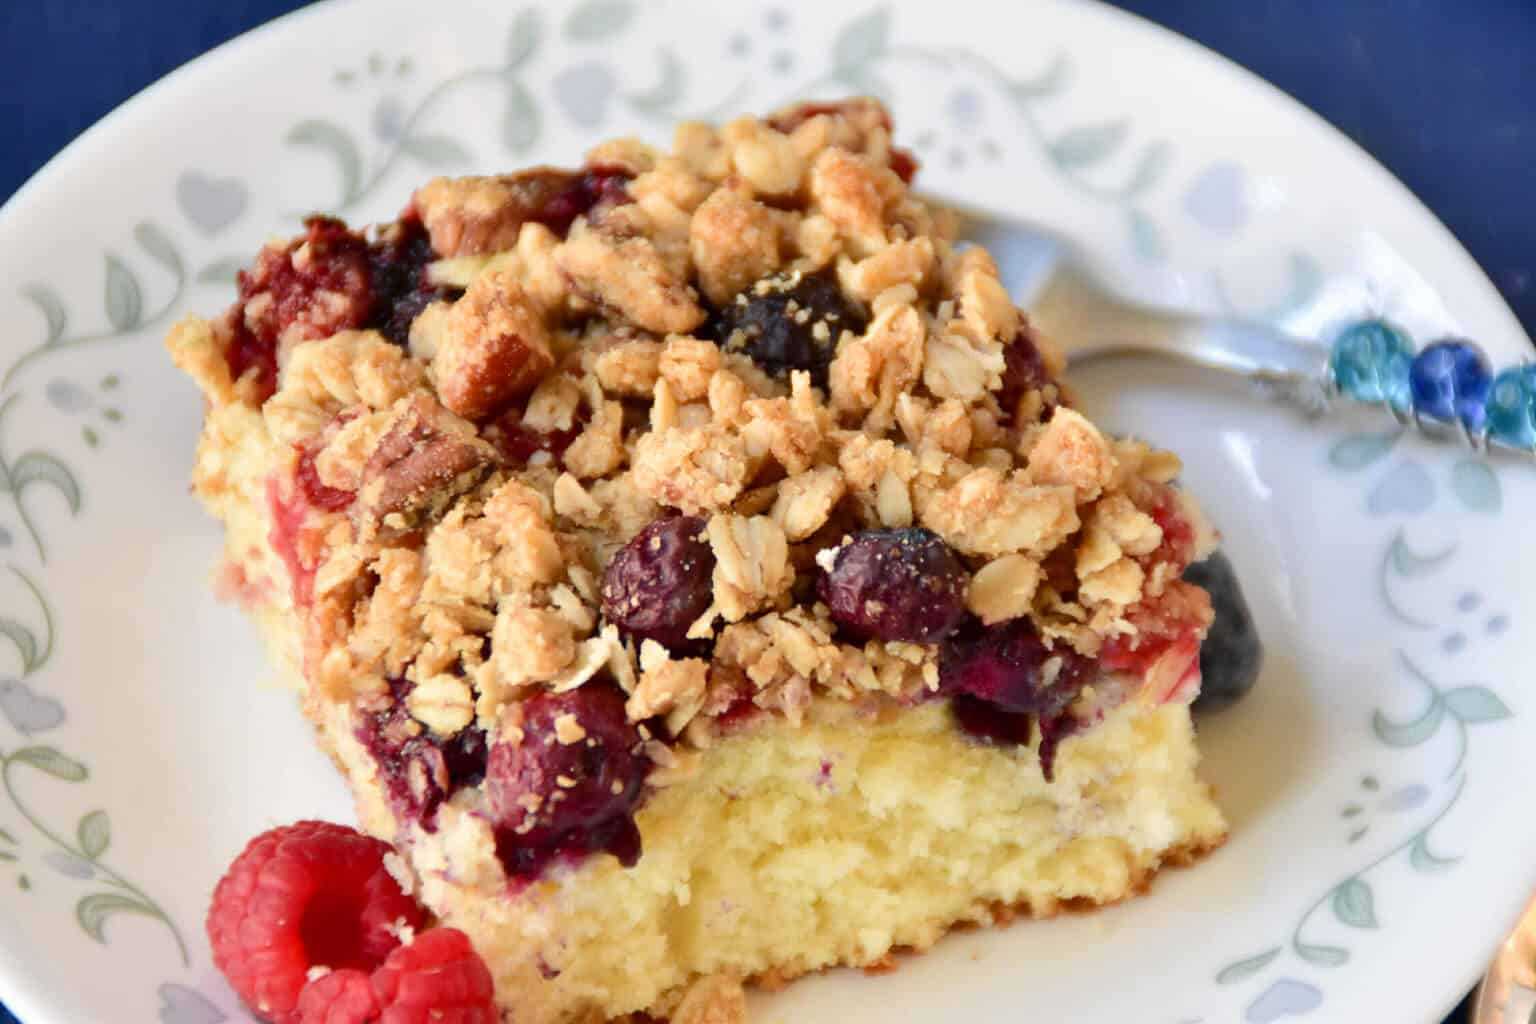 Mixed Berry Crumble Cake